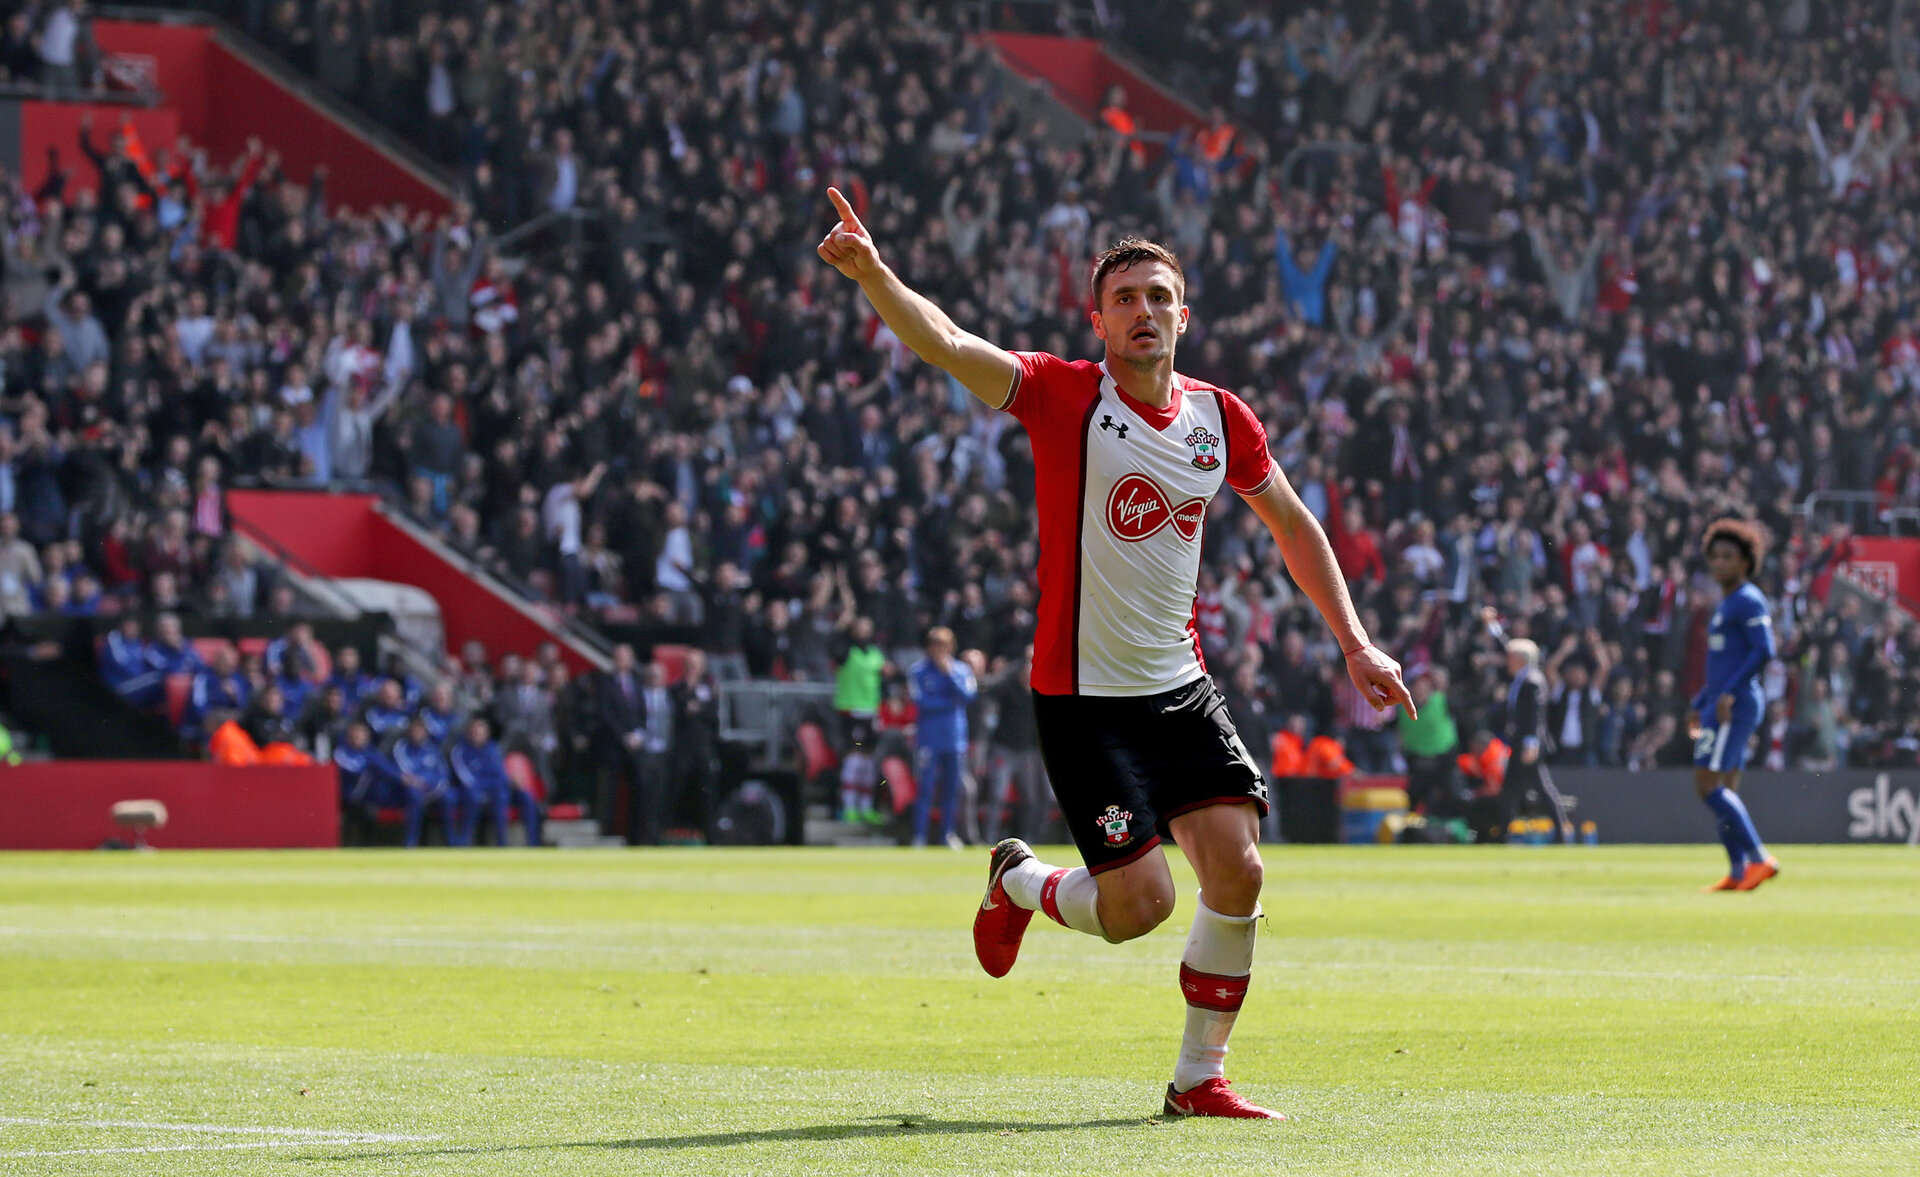 SOUTHAMPTON, ENGLAND - APRIL 14: Dusan Tadic of Southampton celebrates after opening the scoring during the Premier League match between Southampton and Chelsea at St Mary's Stadium on April 14, 2018 in Southampton, England. (Photo by Matt Watson/Southampton FC via Getty Images)